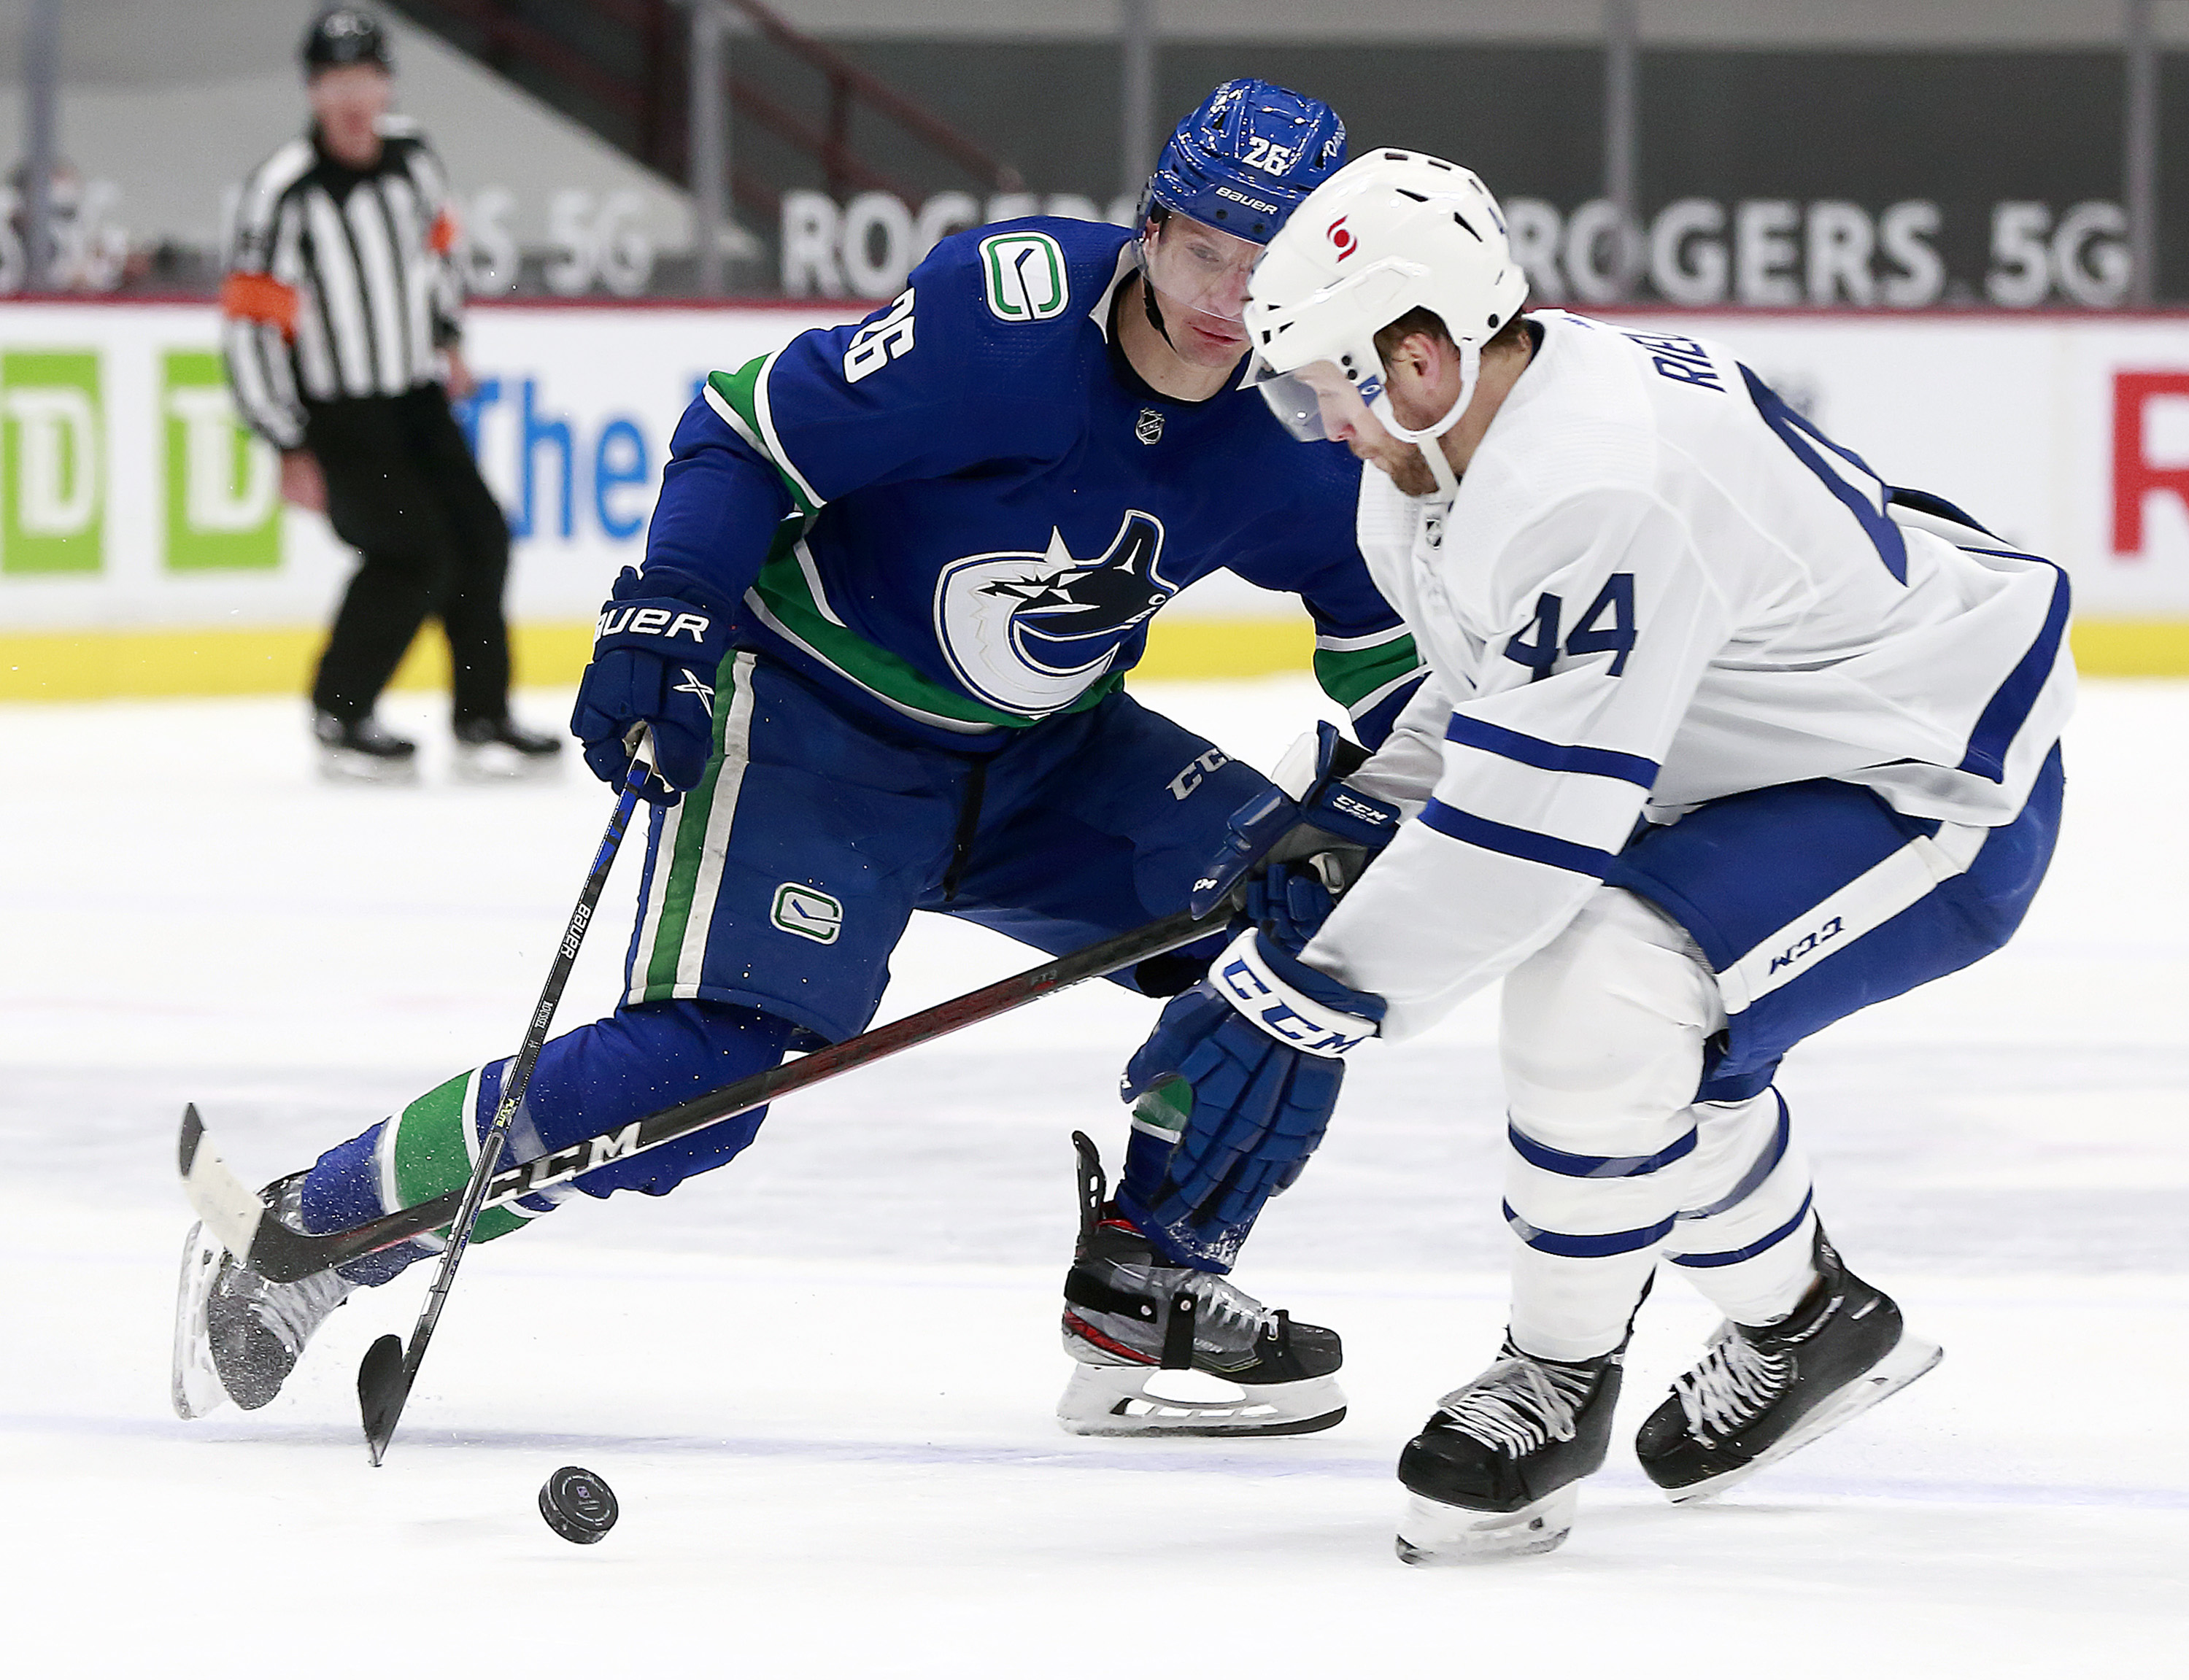 Postgame: Leafs stonewalled, drained in loss to Canucks